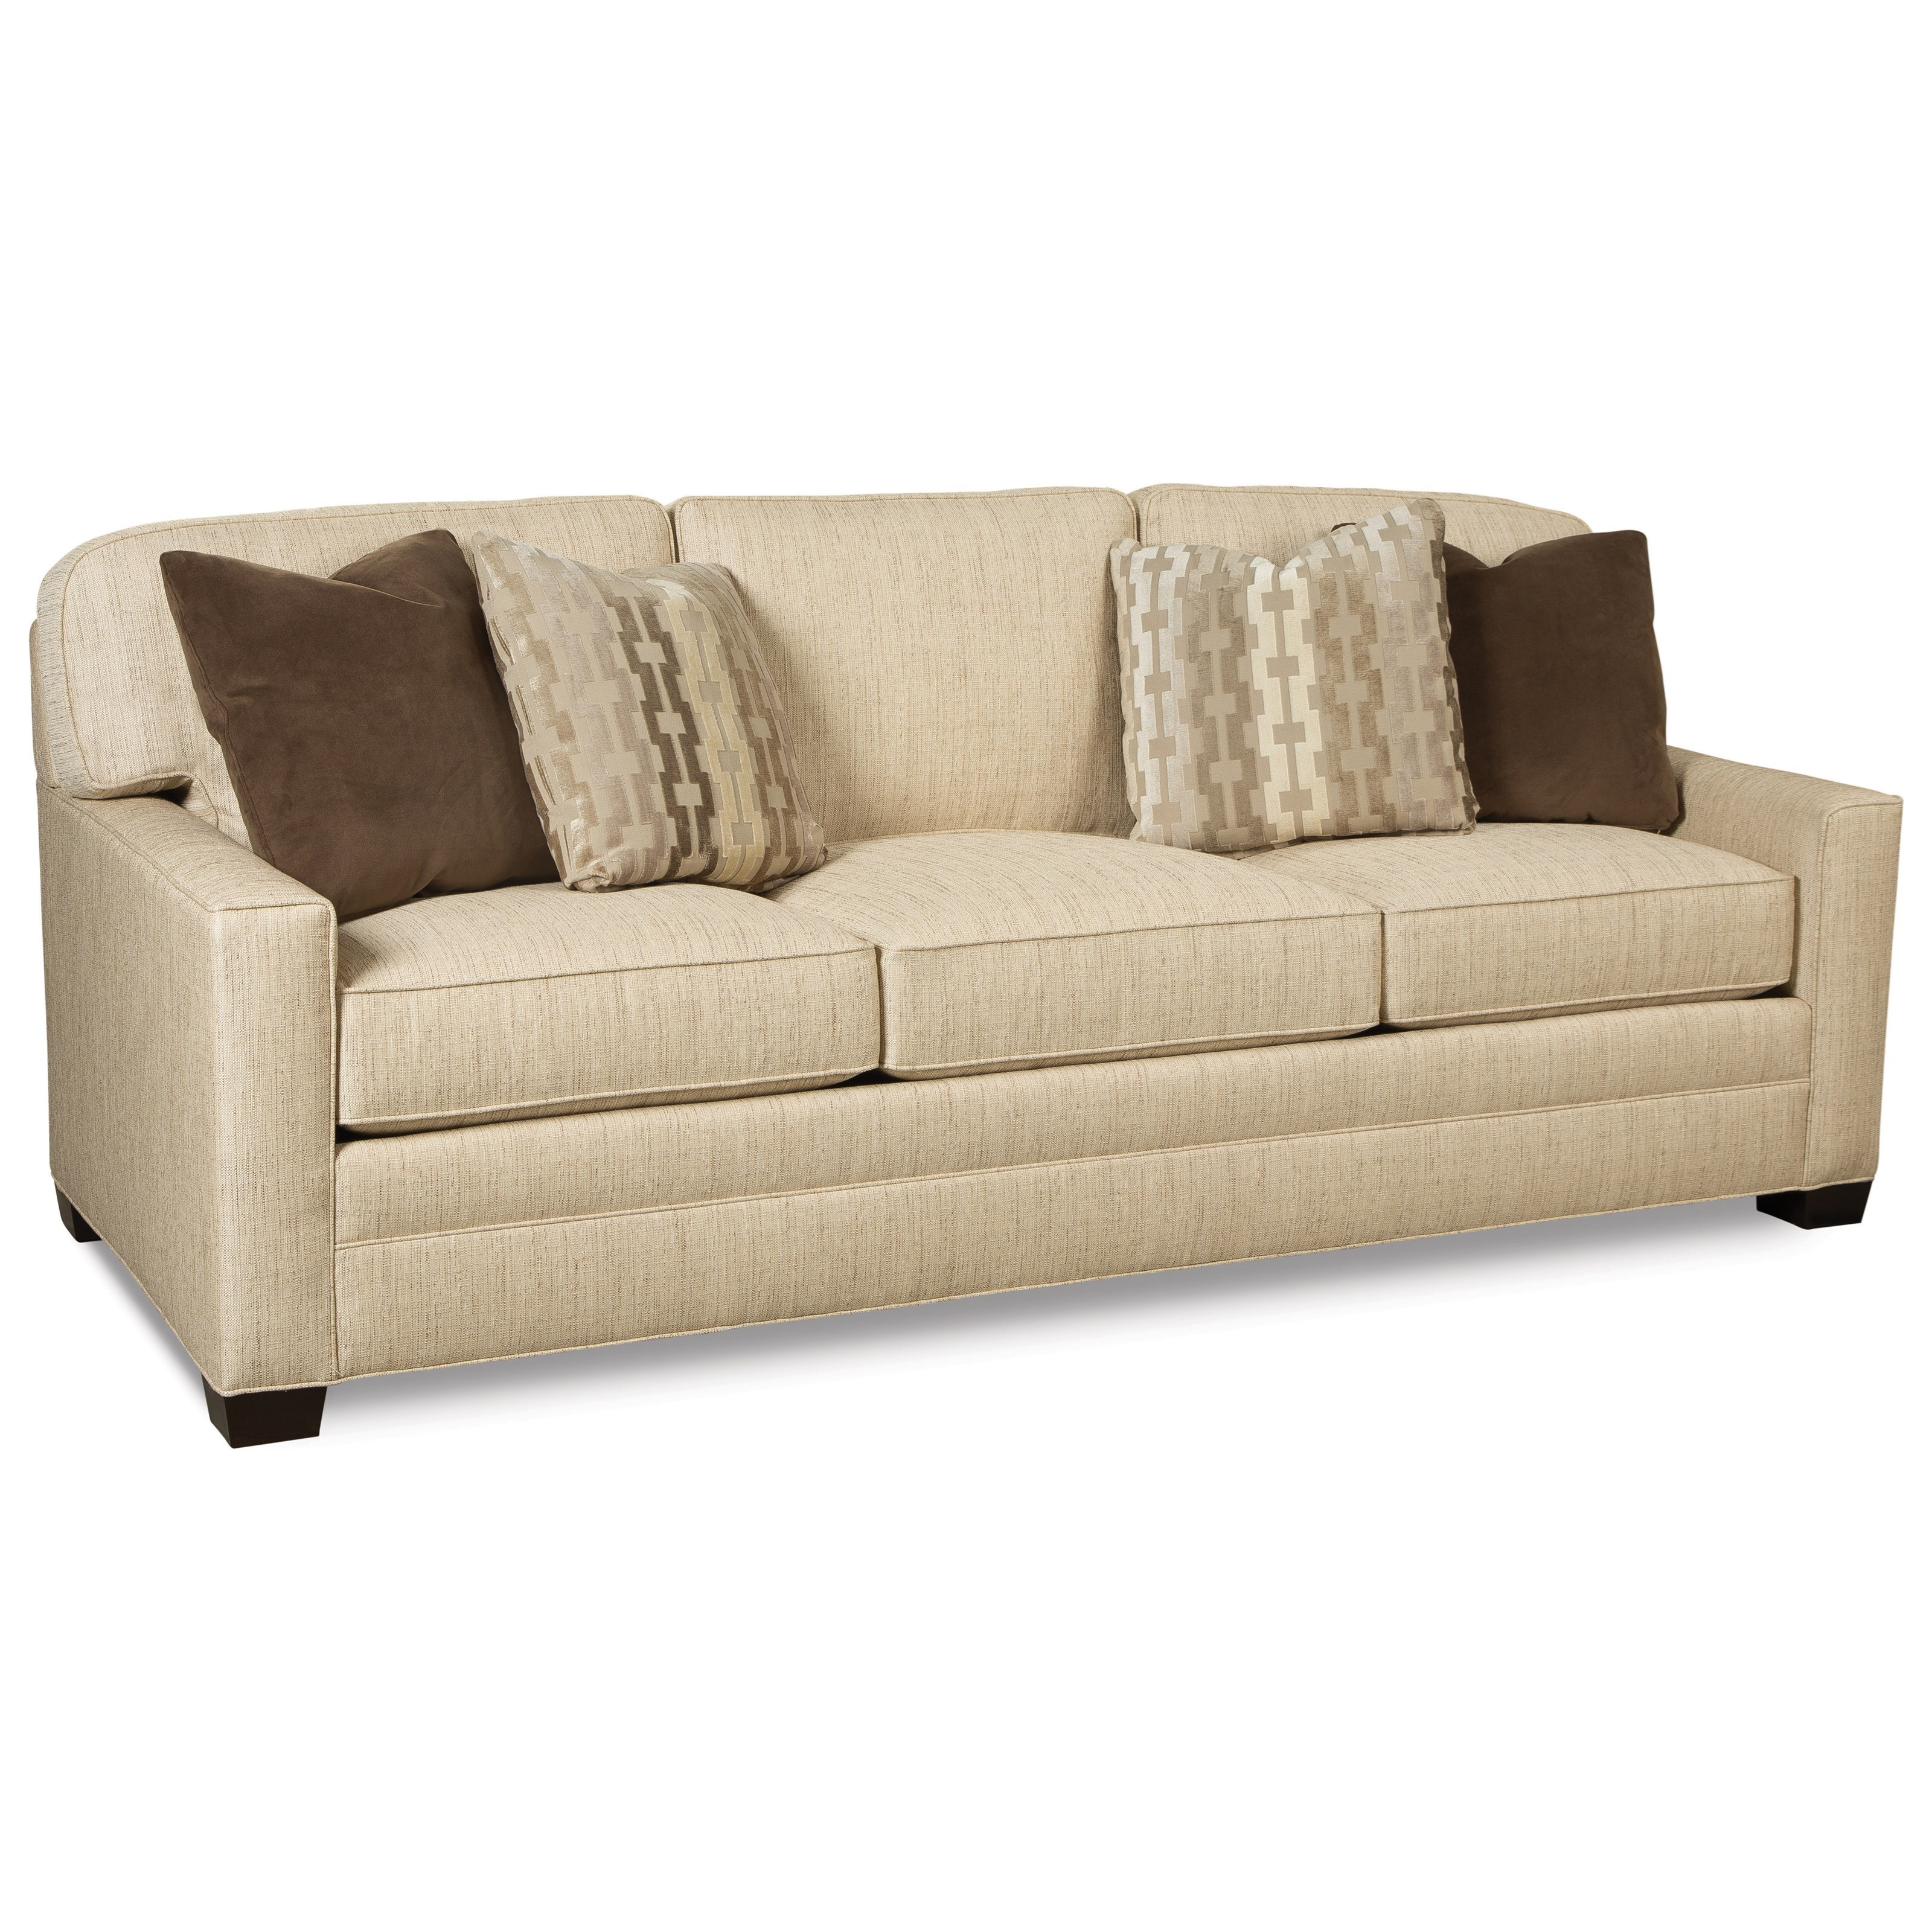 "2062 92"" Sofa by Huntington House at Belfort Furniture"